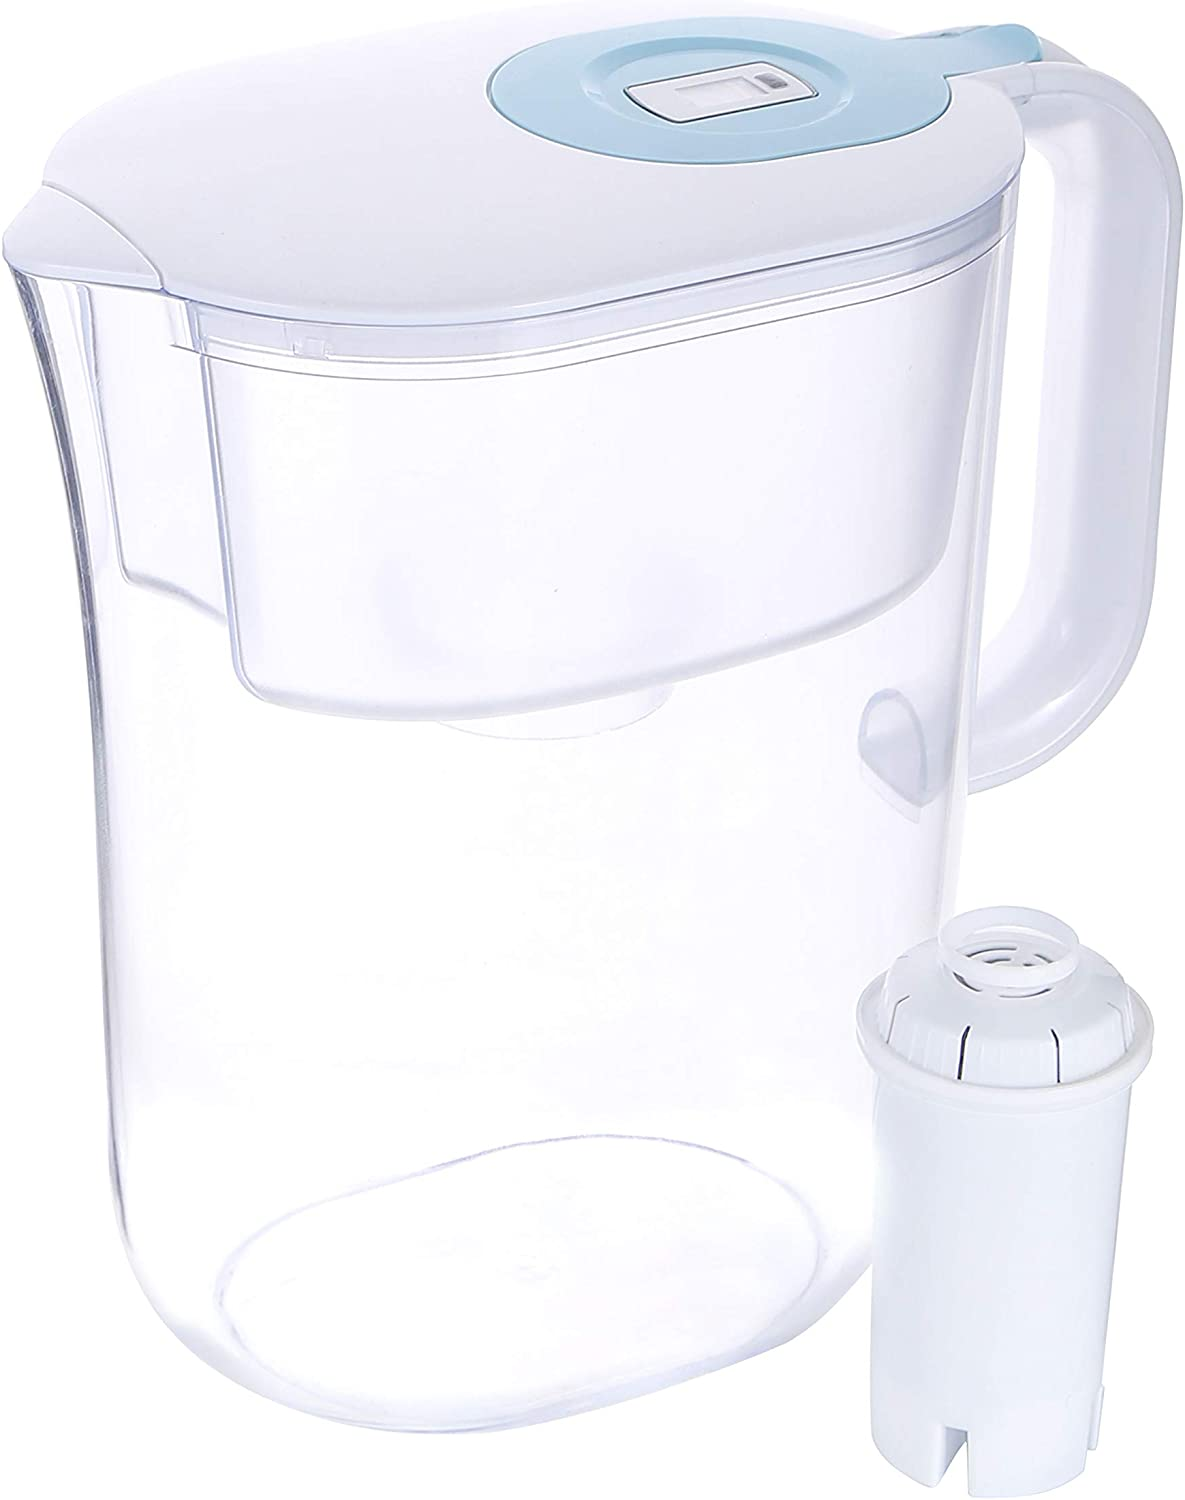 Freco Water Filter Pitcher, 3.5L Large Everyday Water Purification Dispenser, 10-Cup with 1 Filter, Long-Lasting BPA Free Filtration, Reducing Chlorine Lead Alkaline Heavy Metals, White